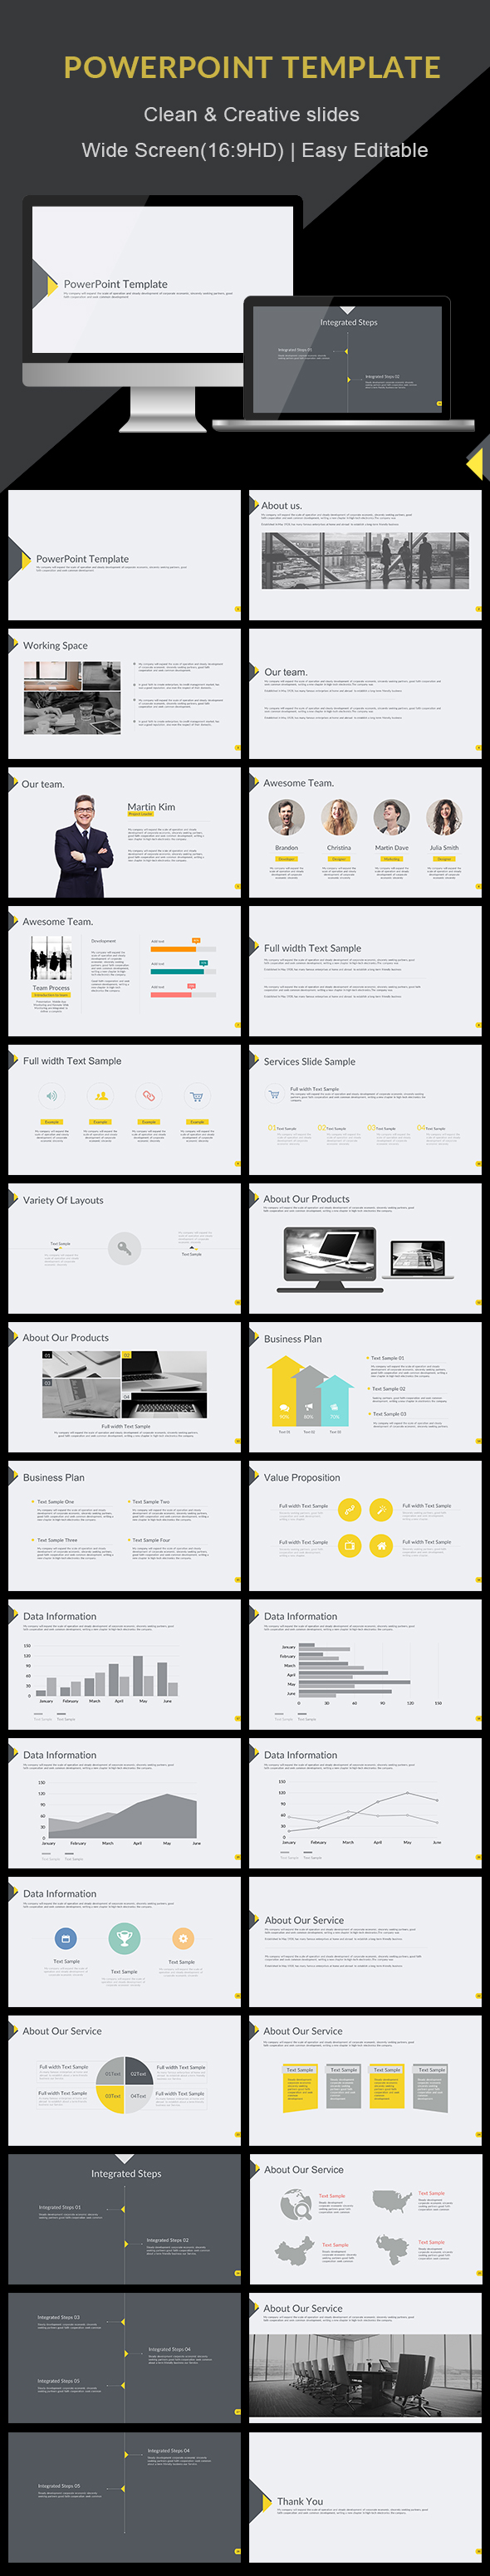 Clean - PowerPoint Presentation Template